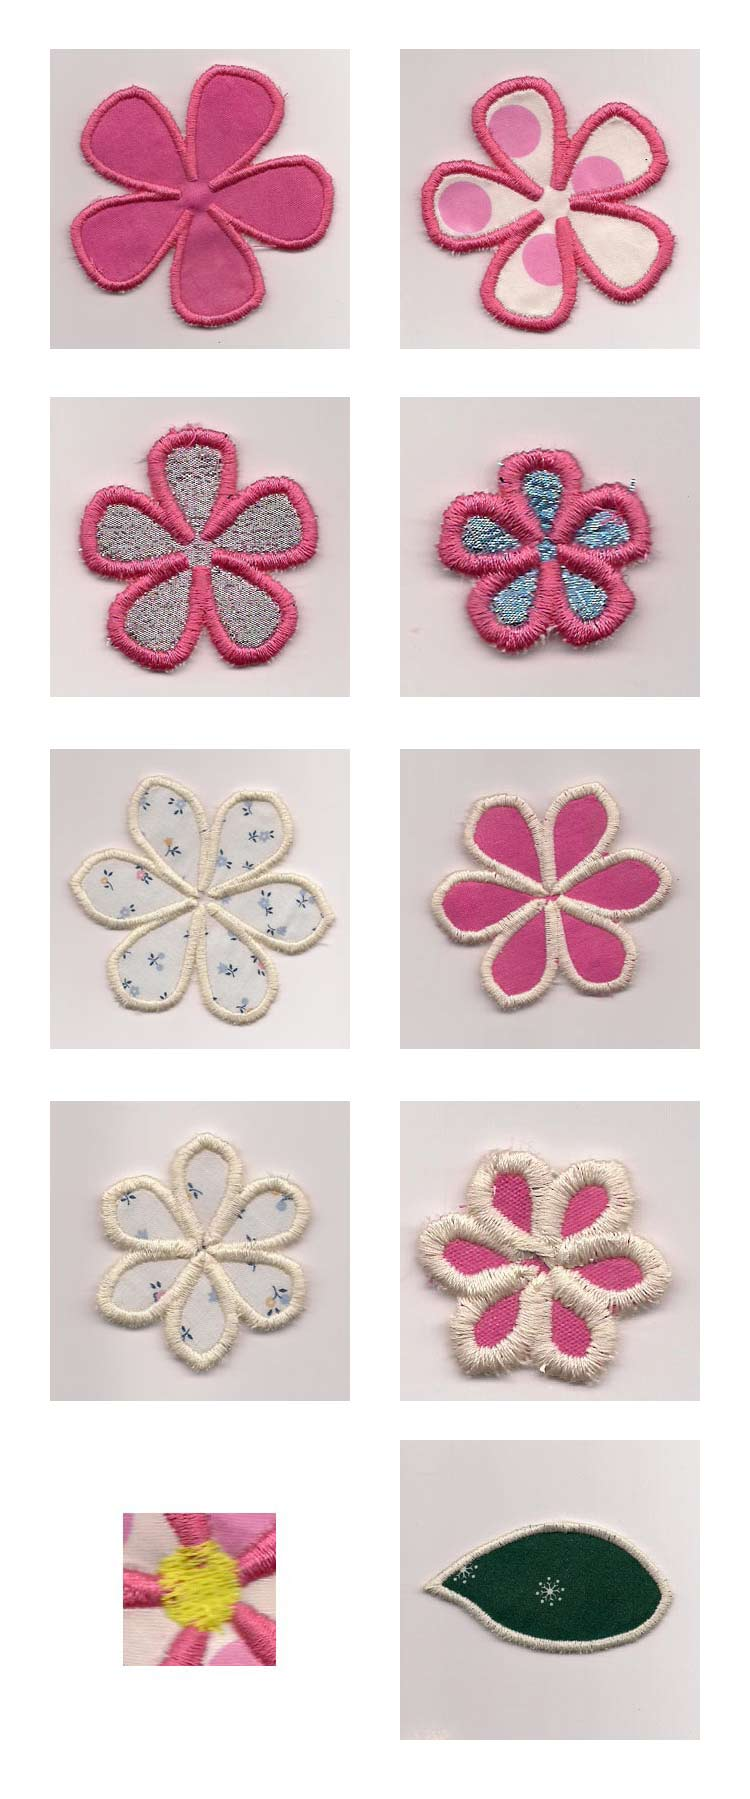 3D Flowers Embroidery Machine Design Details